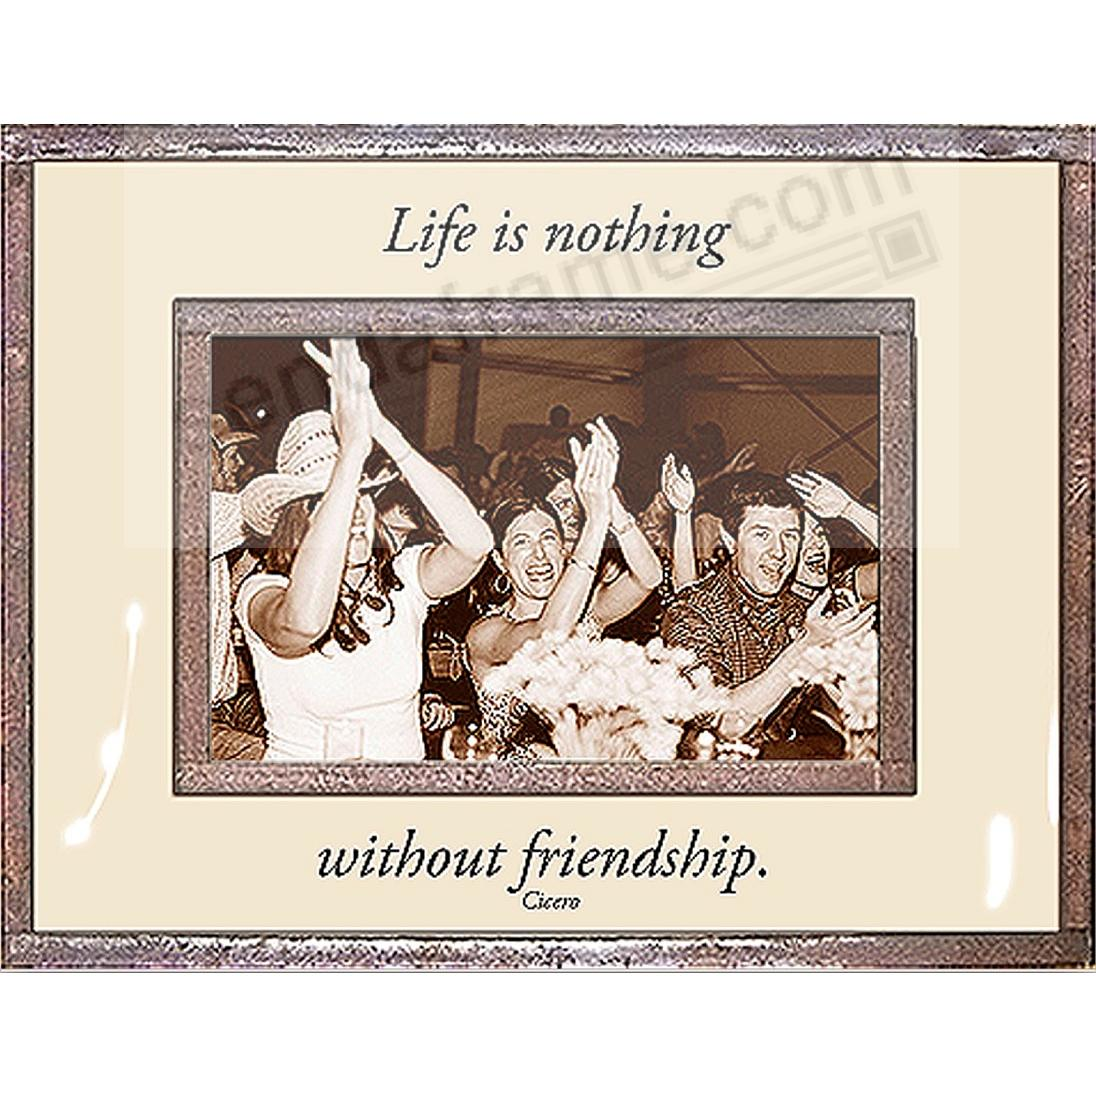 LIFE IS NOTHING WITHOUT FRIENDSHIP Copper + Clear Glass by Ben's Garden®